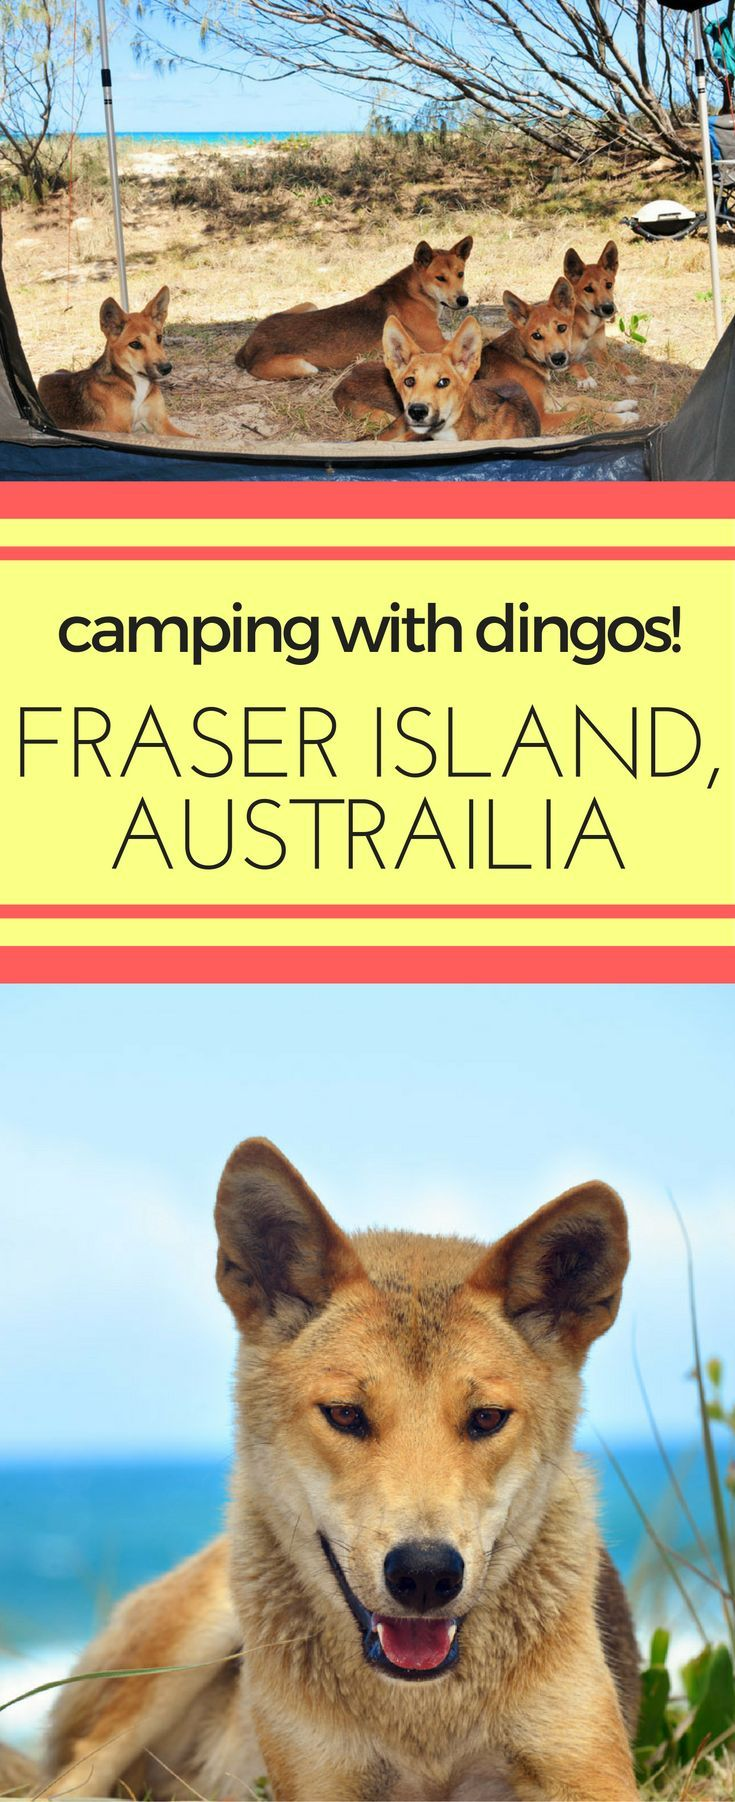 Camping with dingos on Fraser Island, Australia